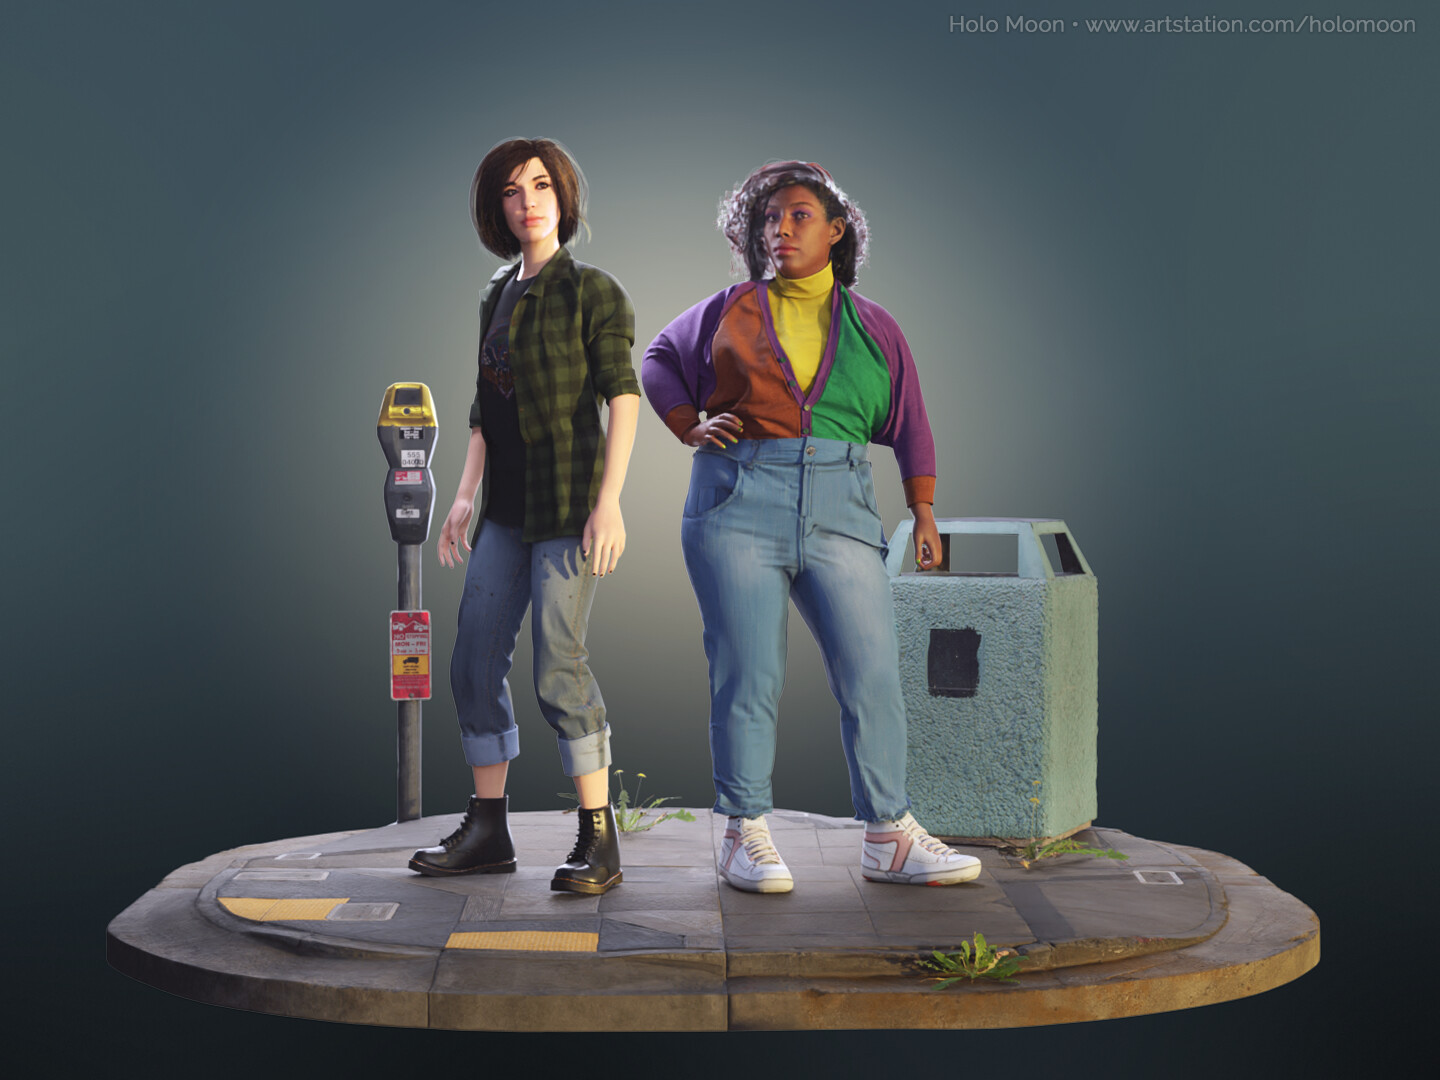 Edie (left) and Melissa (right) Characters created for the Project Boombox cinematic. Props from Megascans